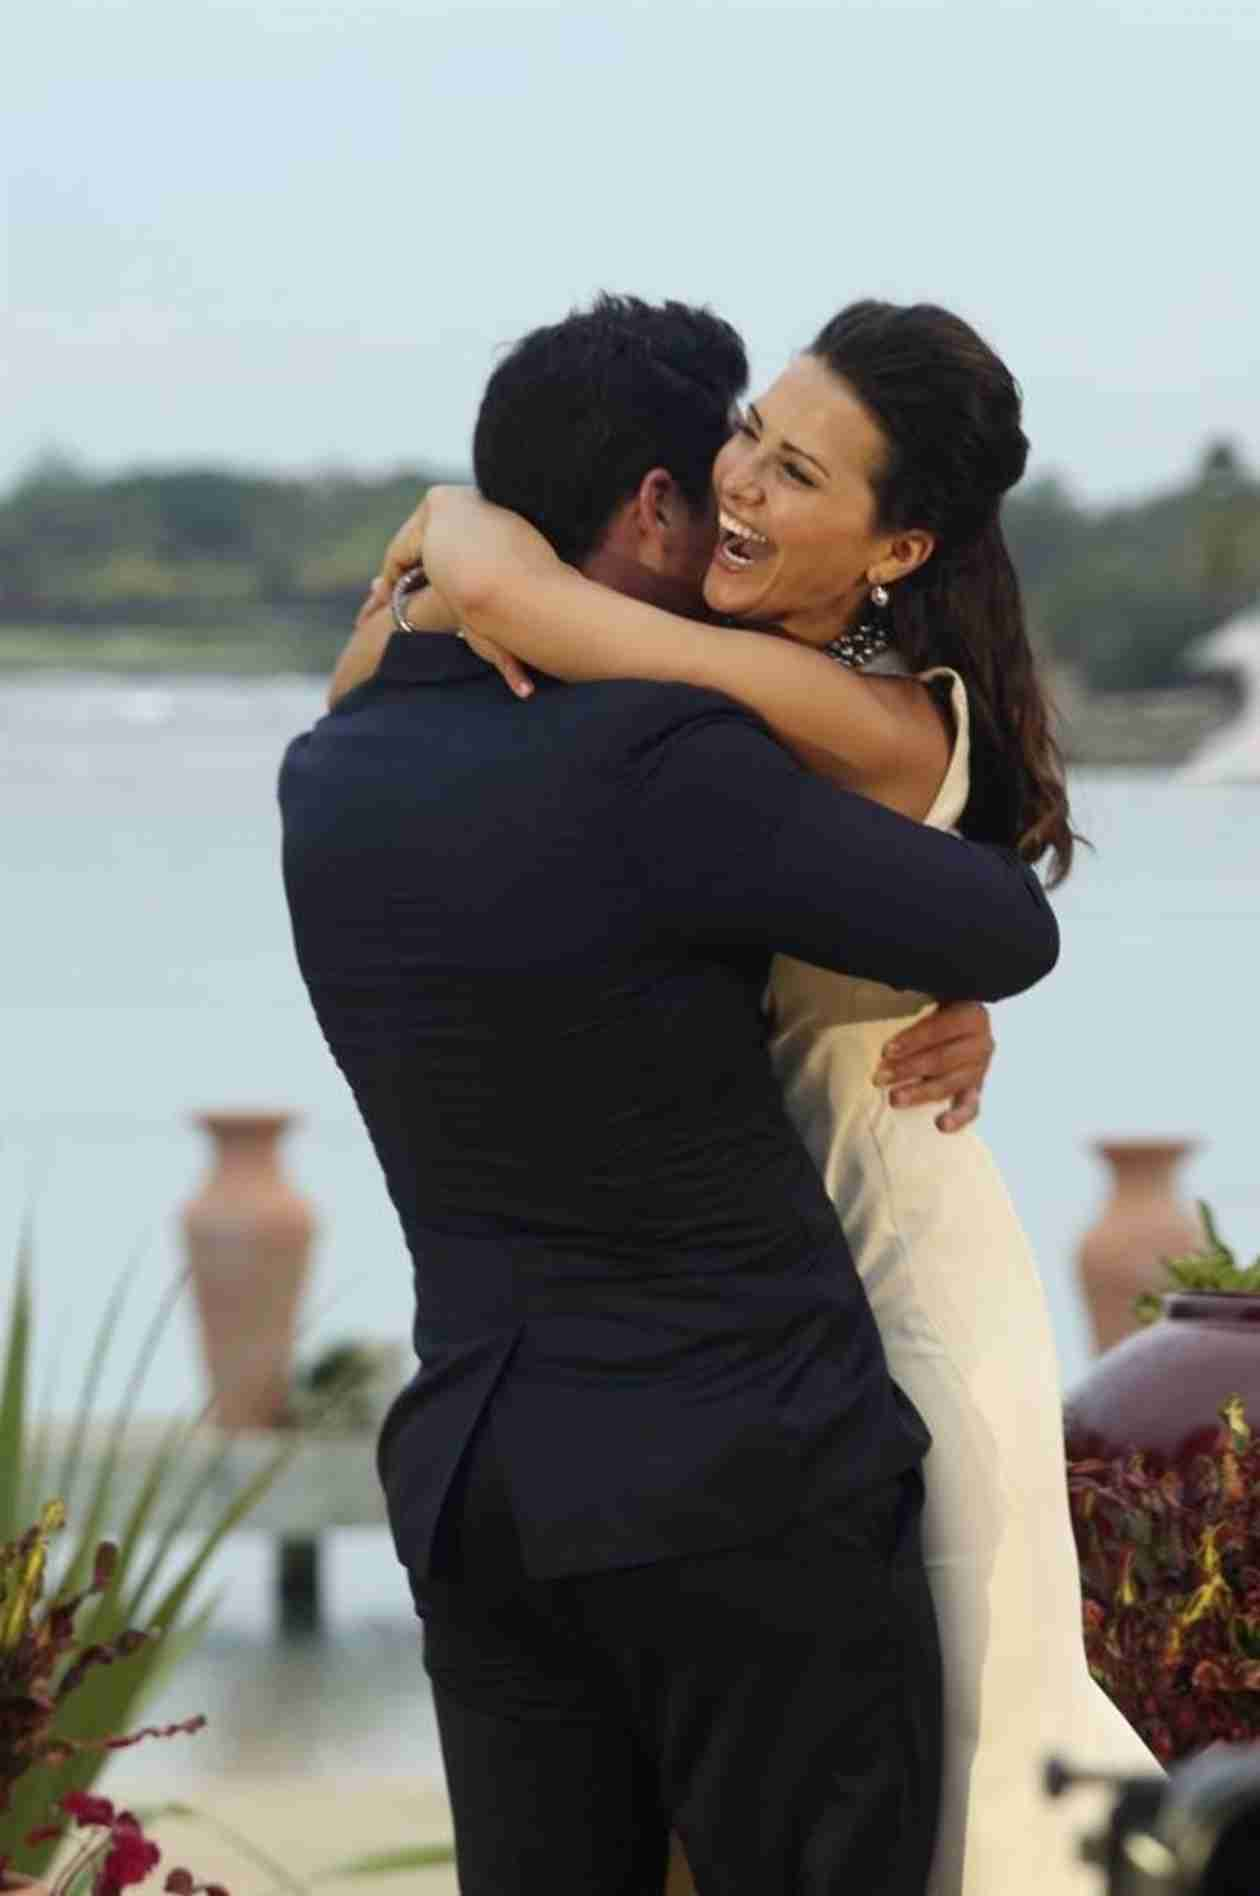 BREAKING: Andi Dorfman Picks Josh Murray in The Bachelorette 2014 Finale!